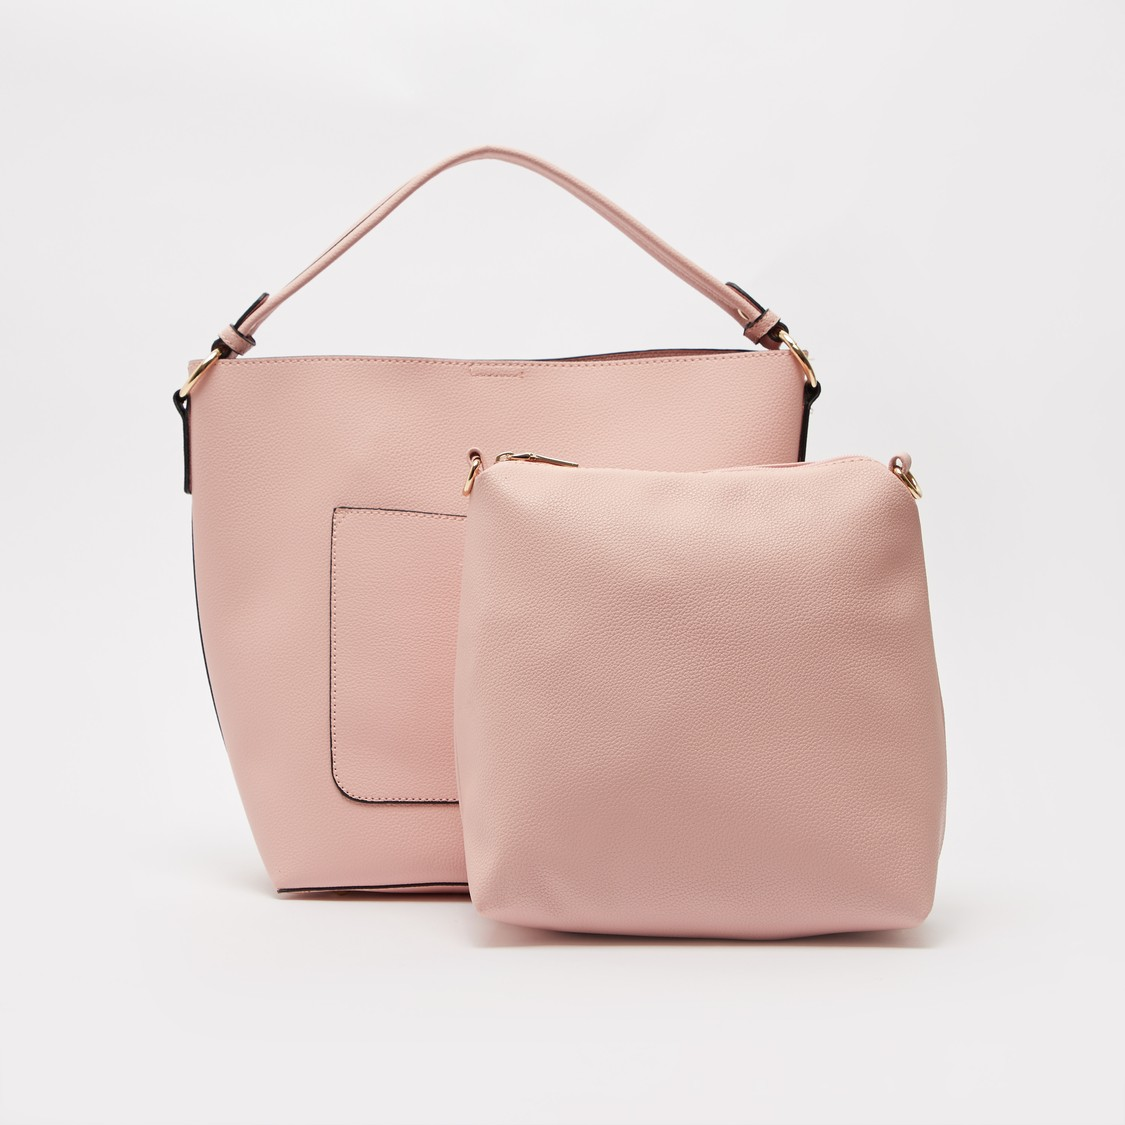 Textured Handbag and Pouch